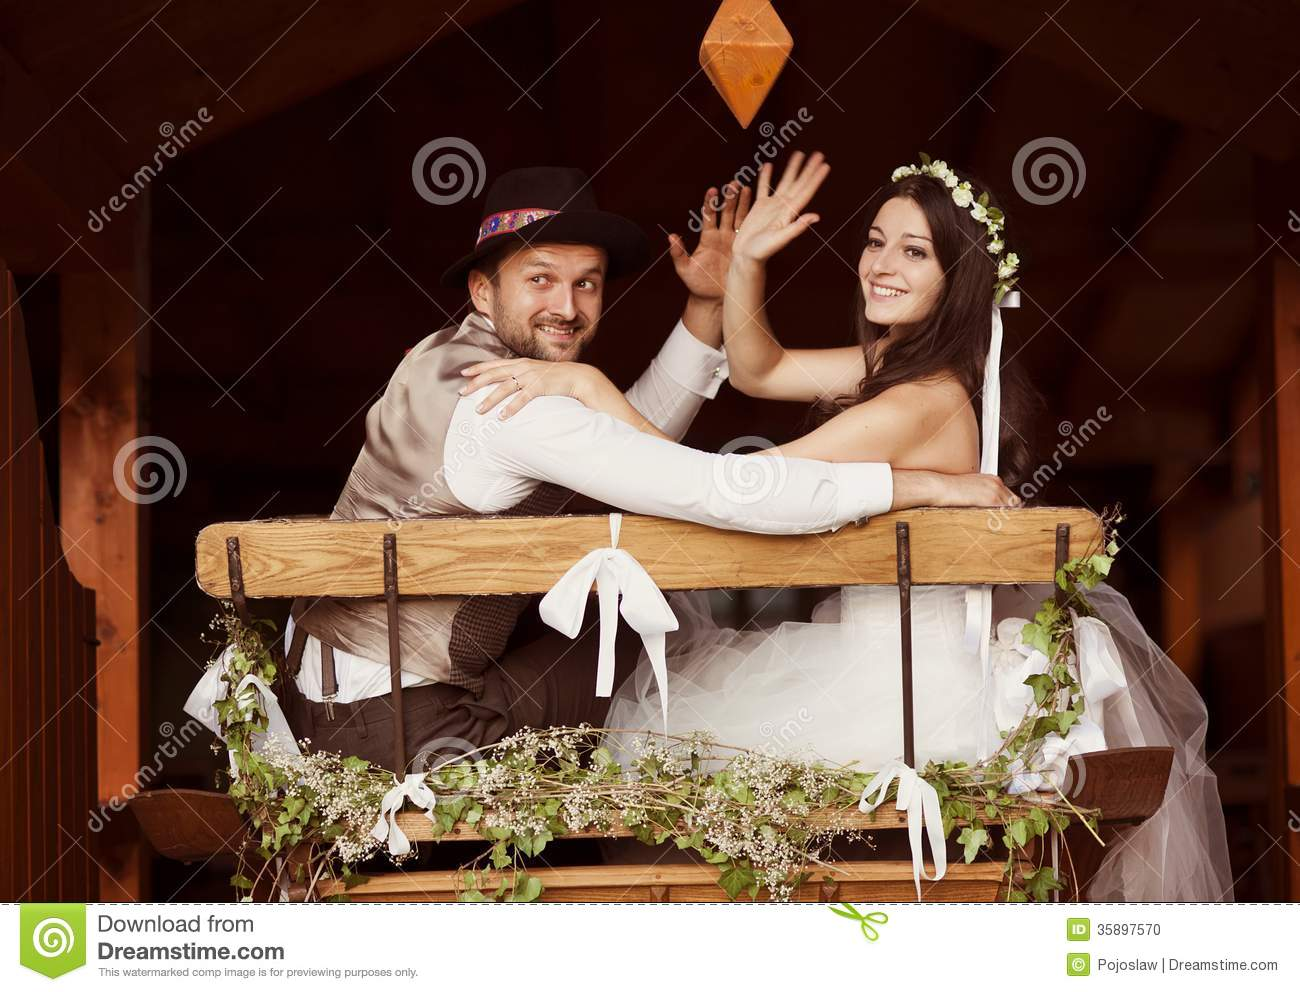 Bride And Groom Country Style Wedding Stock Photo - Image: 35897570